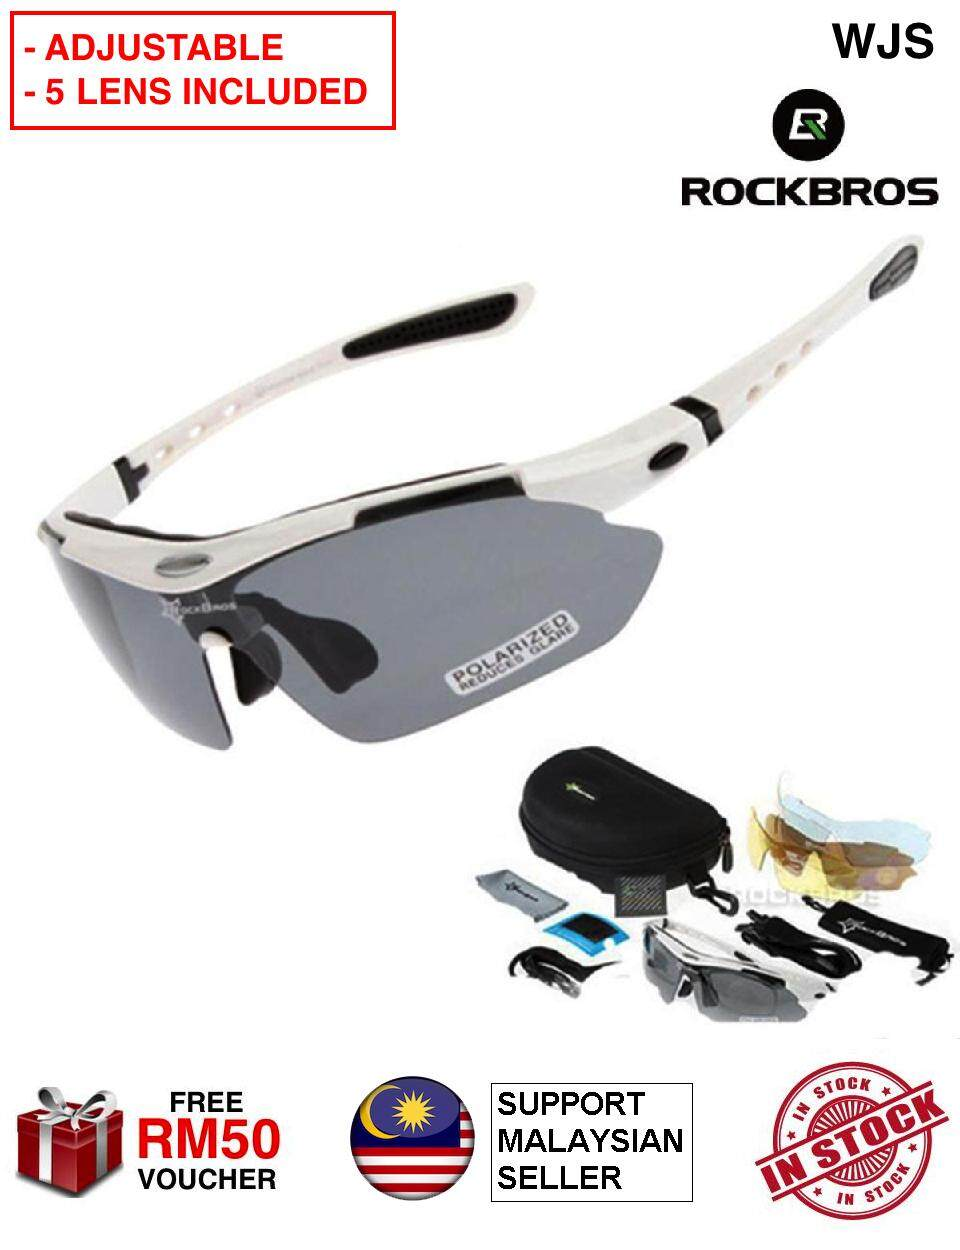 (5 IN 1 LENS) WJS RockBros Polarized Sports Men Sunglasses Sun Glass Spectacles Road Cycling Glasses Mountain Bike Bicycle Riding Protection Goggles Eyewear 5 Lens 2 Style BLACK RED WHITE GOLD [FREE RM 50 VOUCHER]